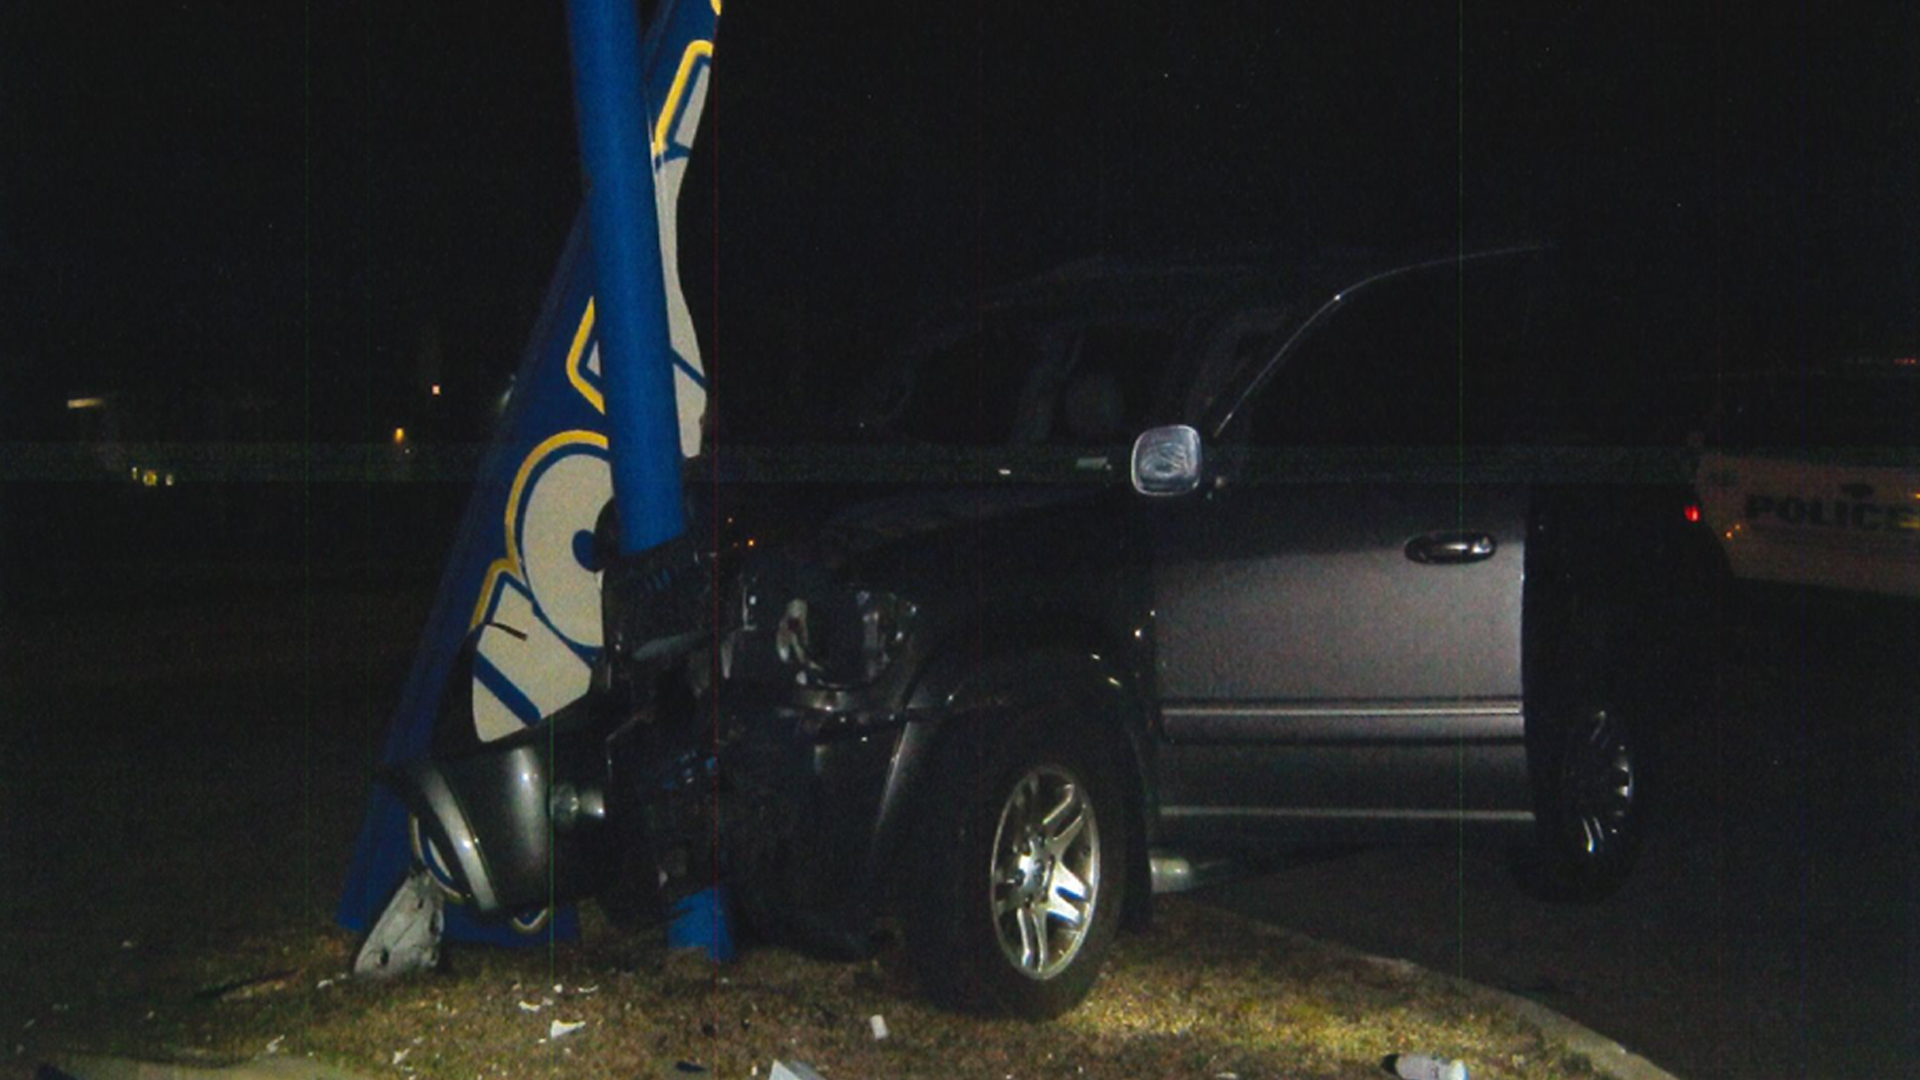 mount pleasant police man crashes car after drinking huffing